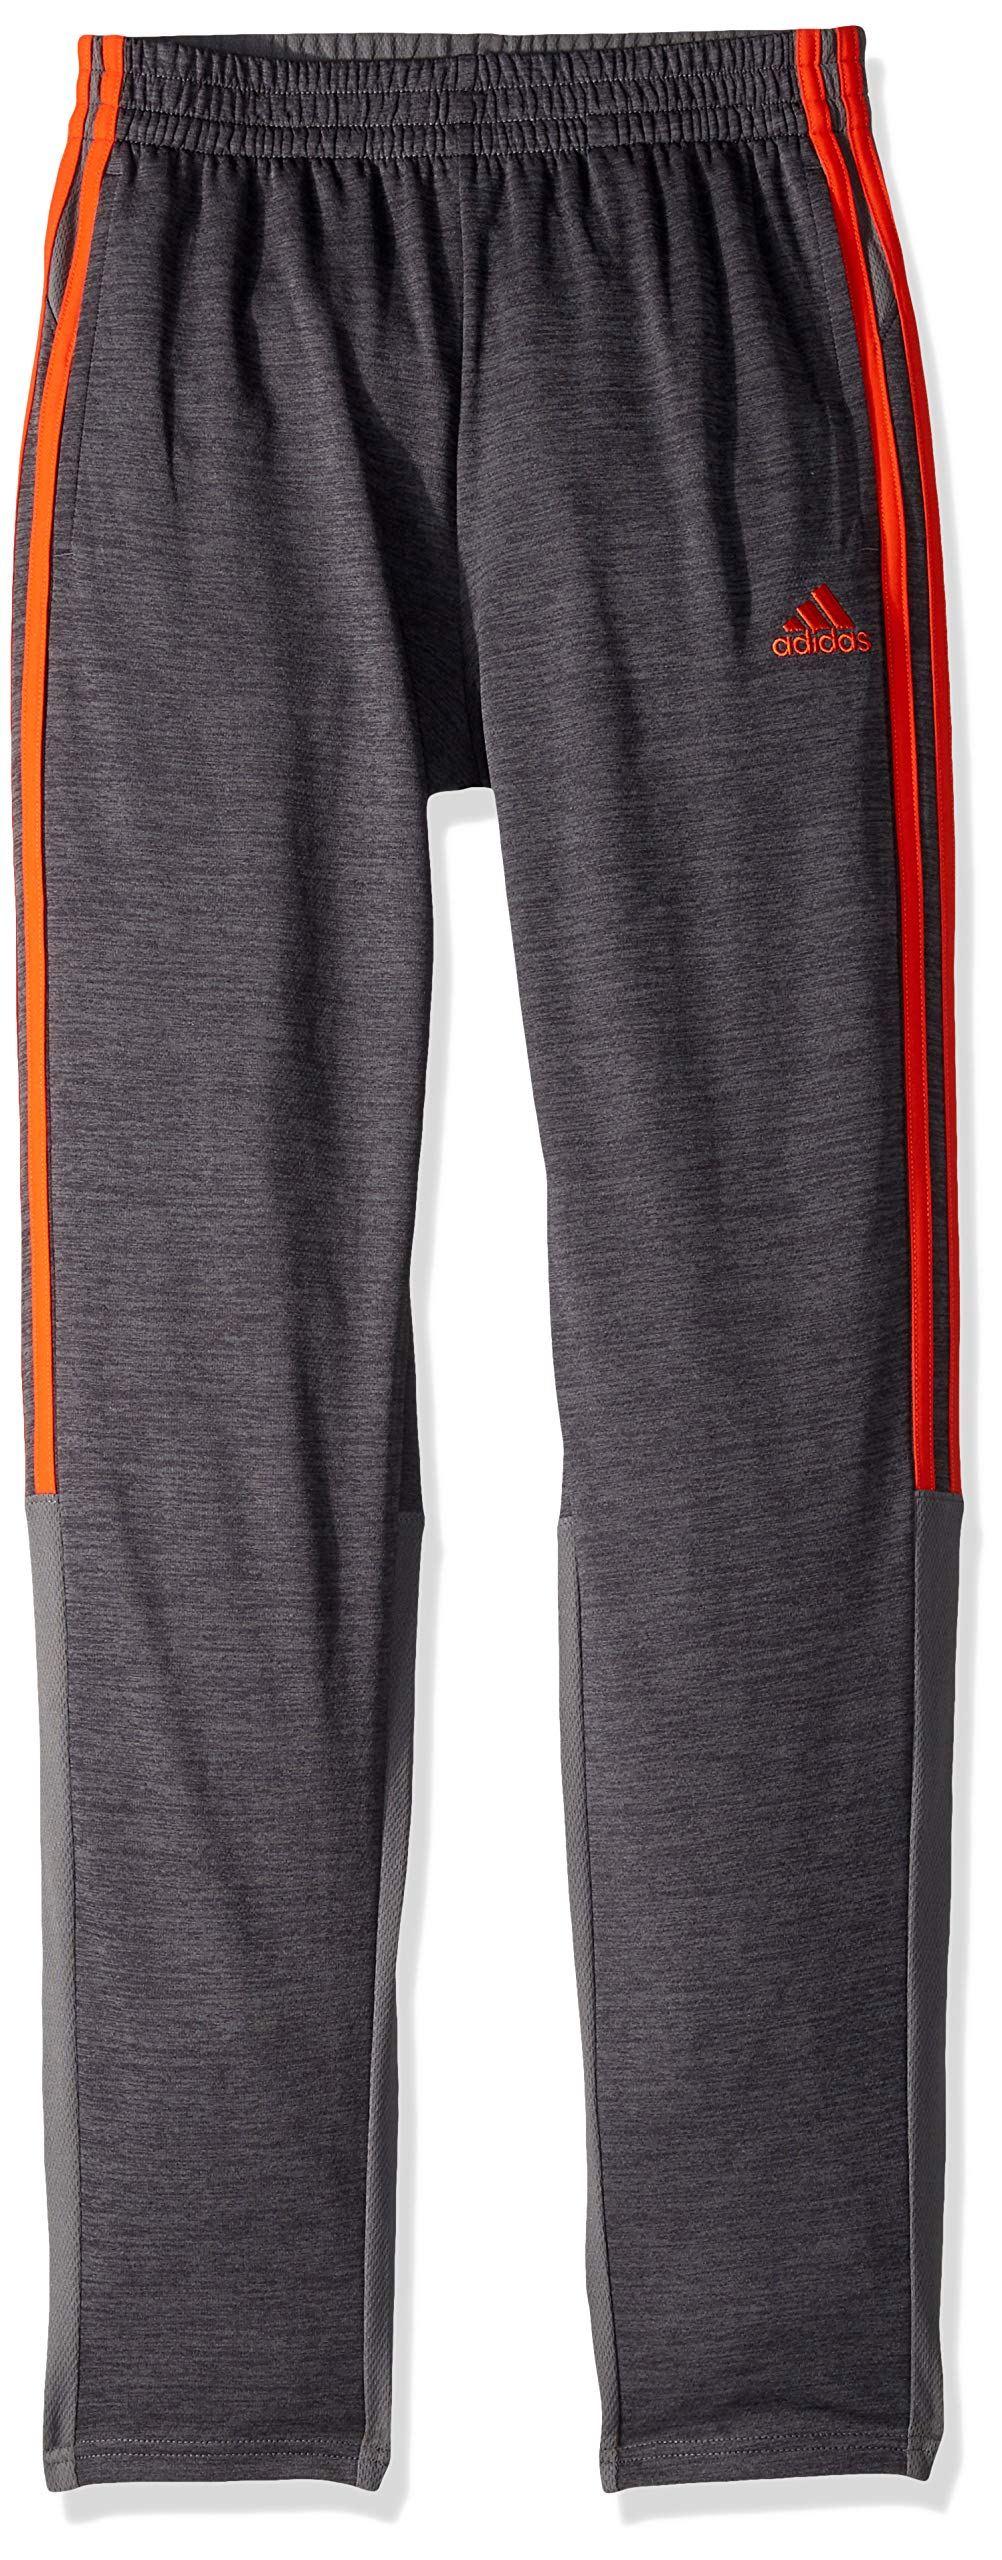 adidas Boys' Big Stay Cool Climalite Athletic Sport Pant, Grey Five Heather/Active Orange, XL (18/20) by adidas